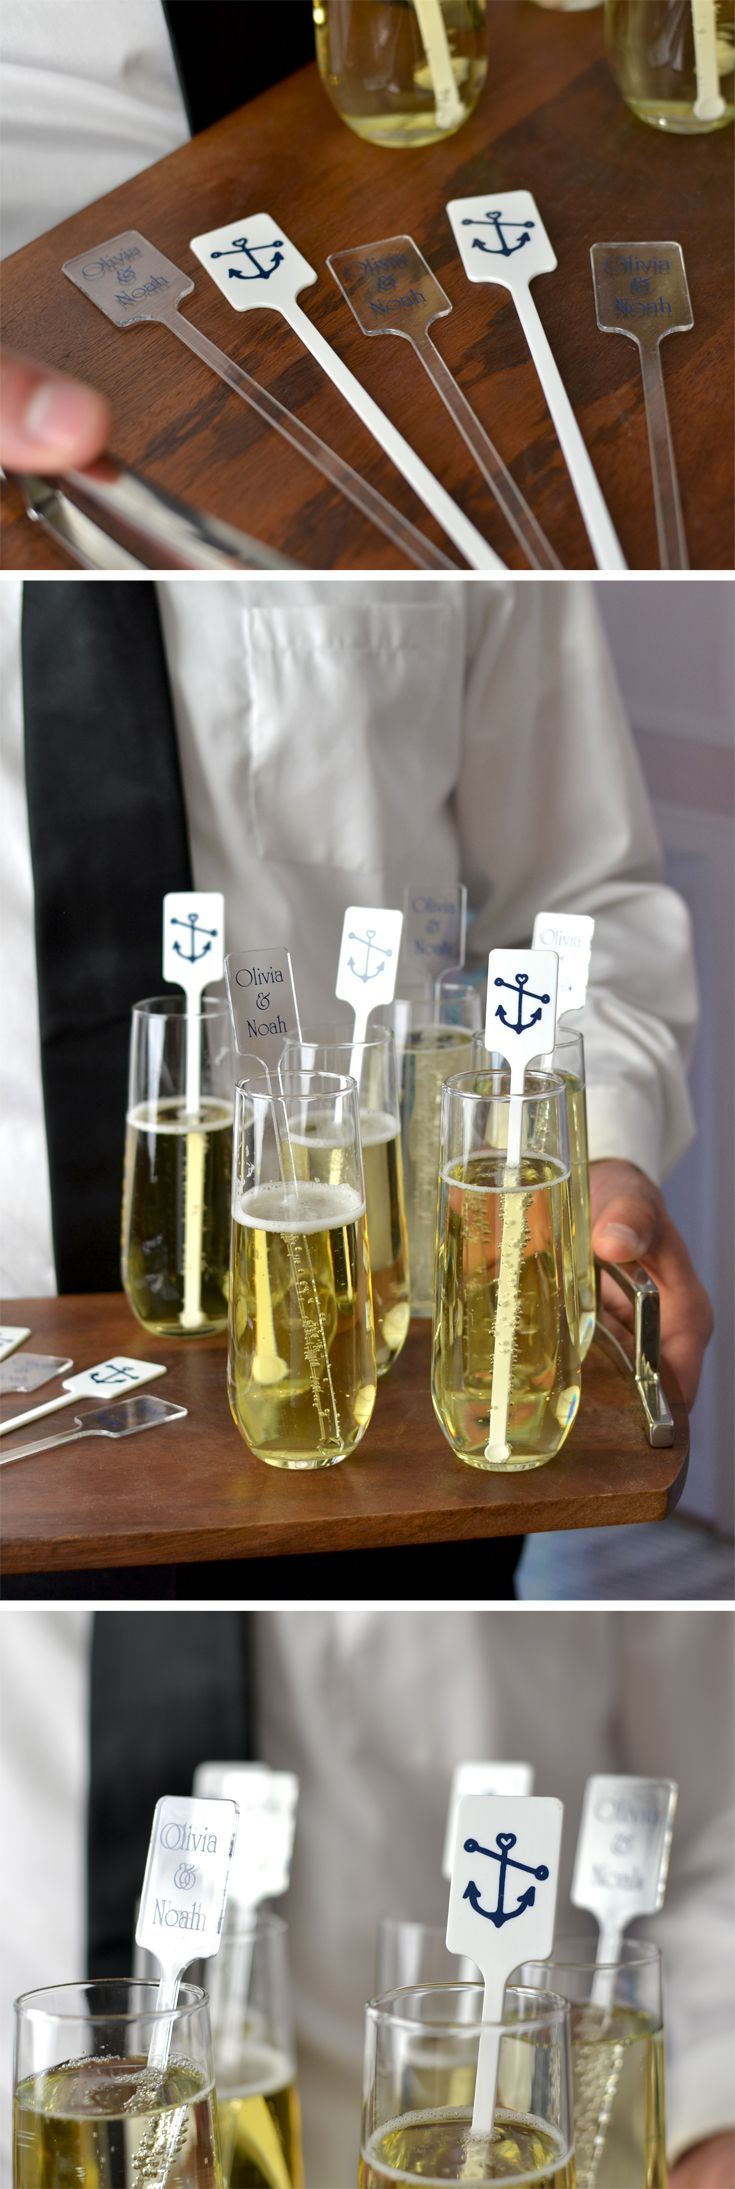 Personalized drink stirrers make the perfect custom touch to your signature wedding cocktails. Personalize with your initials or a cute design to make for a simple but lovely conversation starter for guests. Find more here: http://myweddingreceptionideas.com/personalized_swizzle_sticks_drink_stirrers.asp